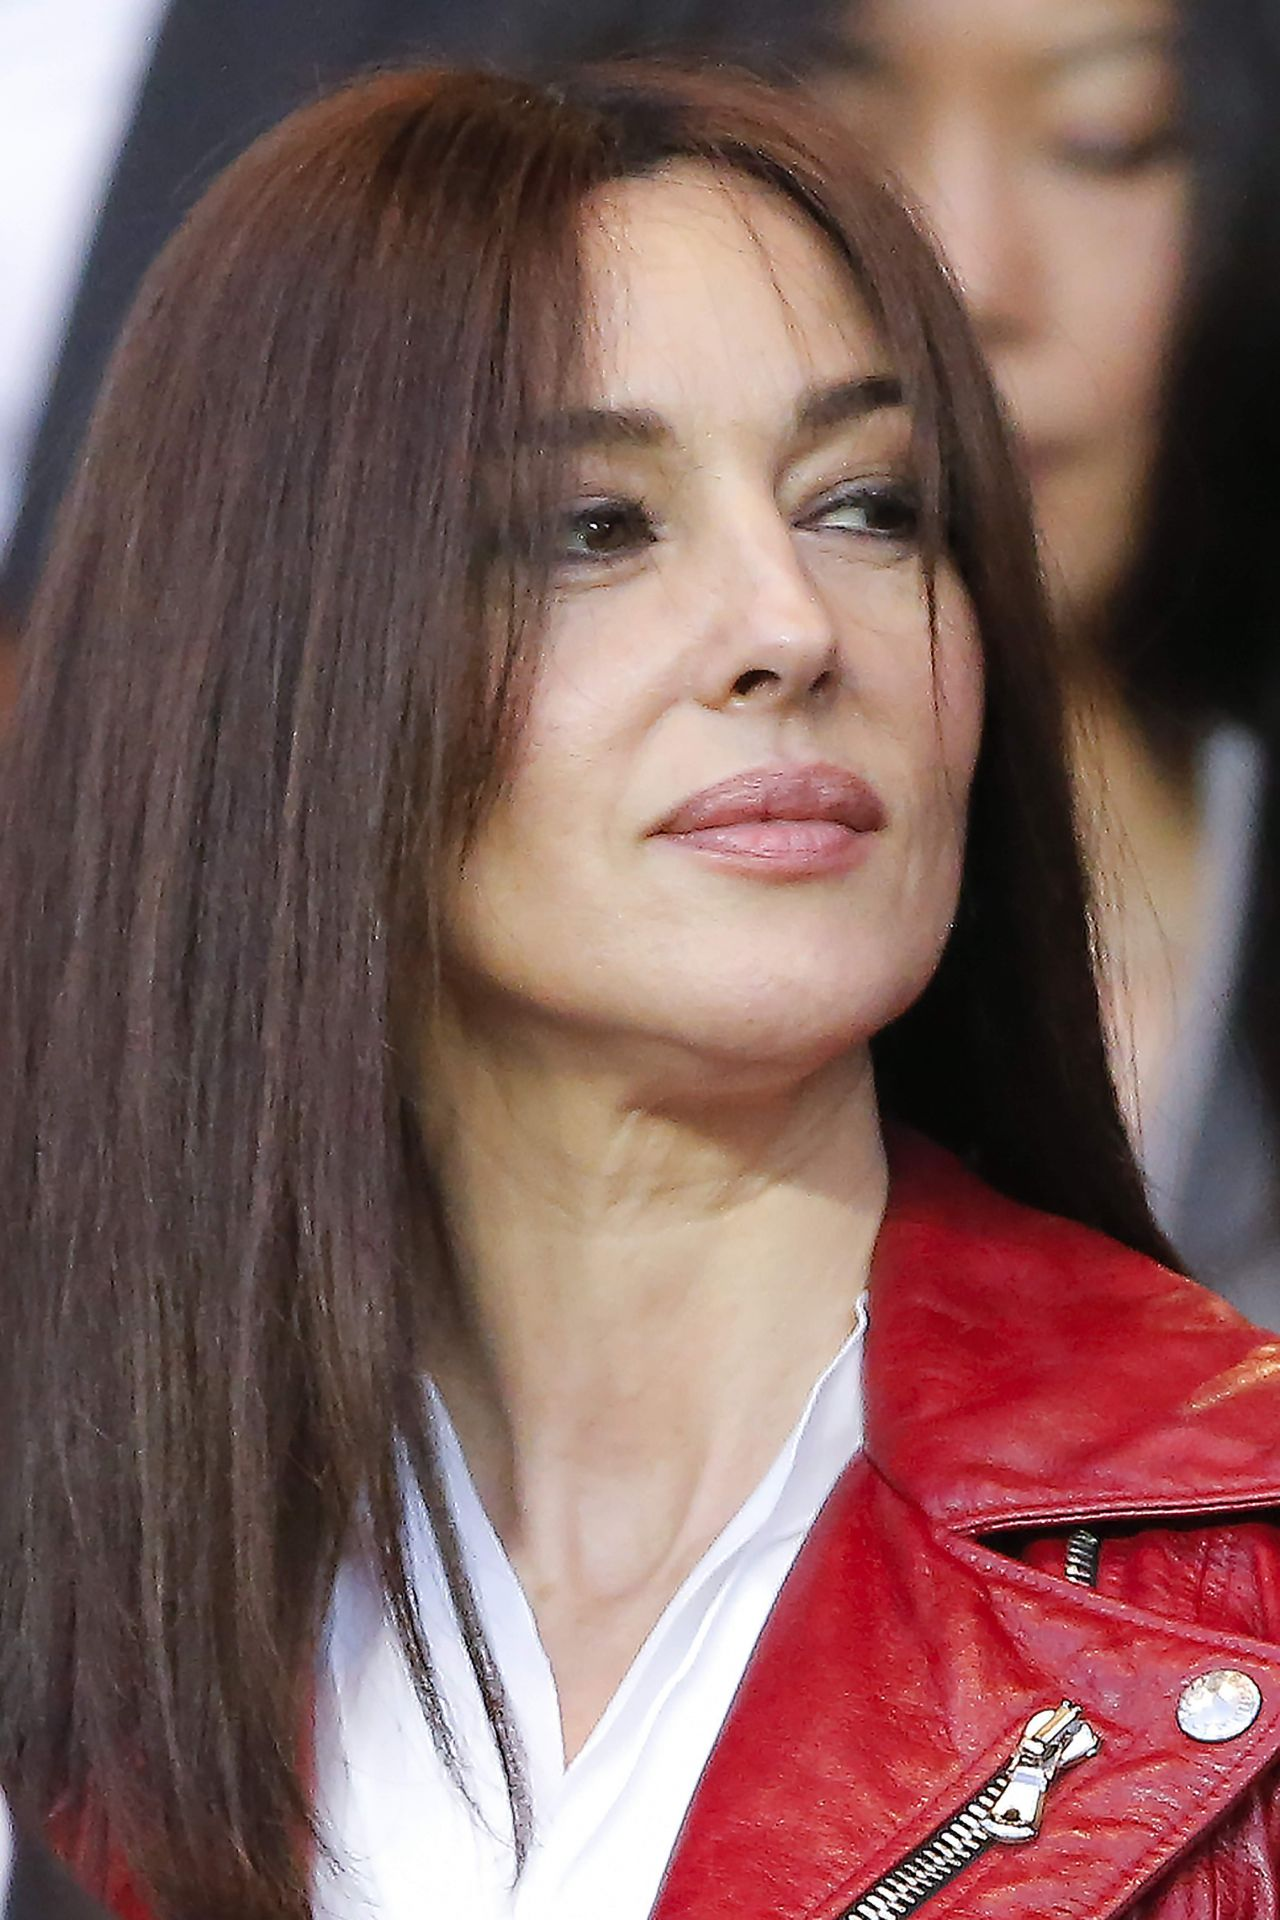 Monica Bellucci 2015 Monica Bellucci 2015